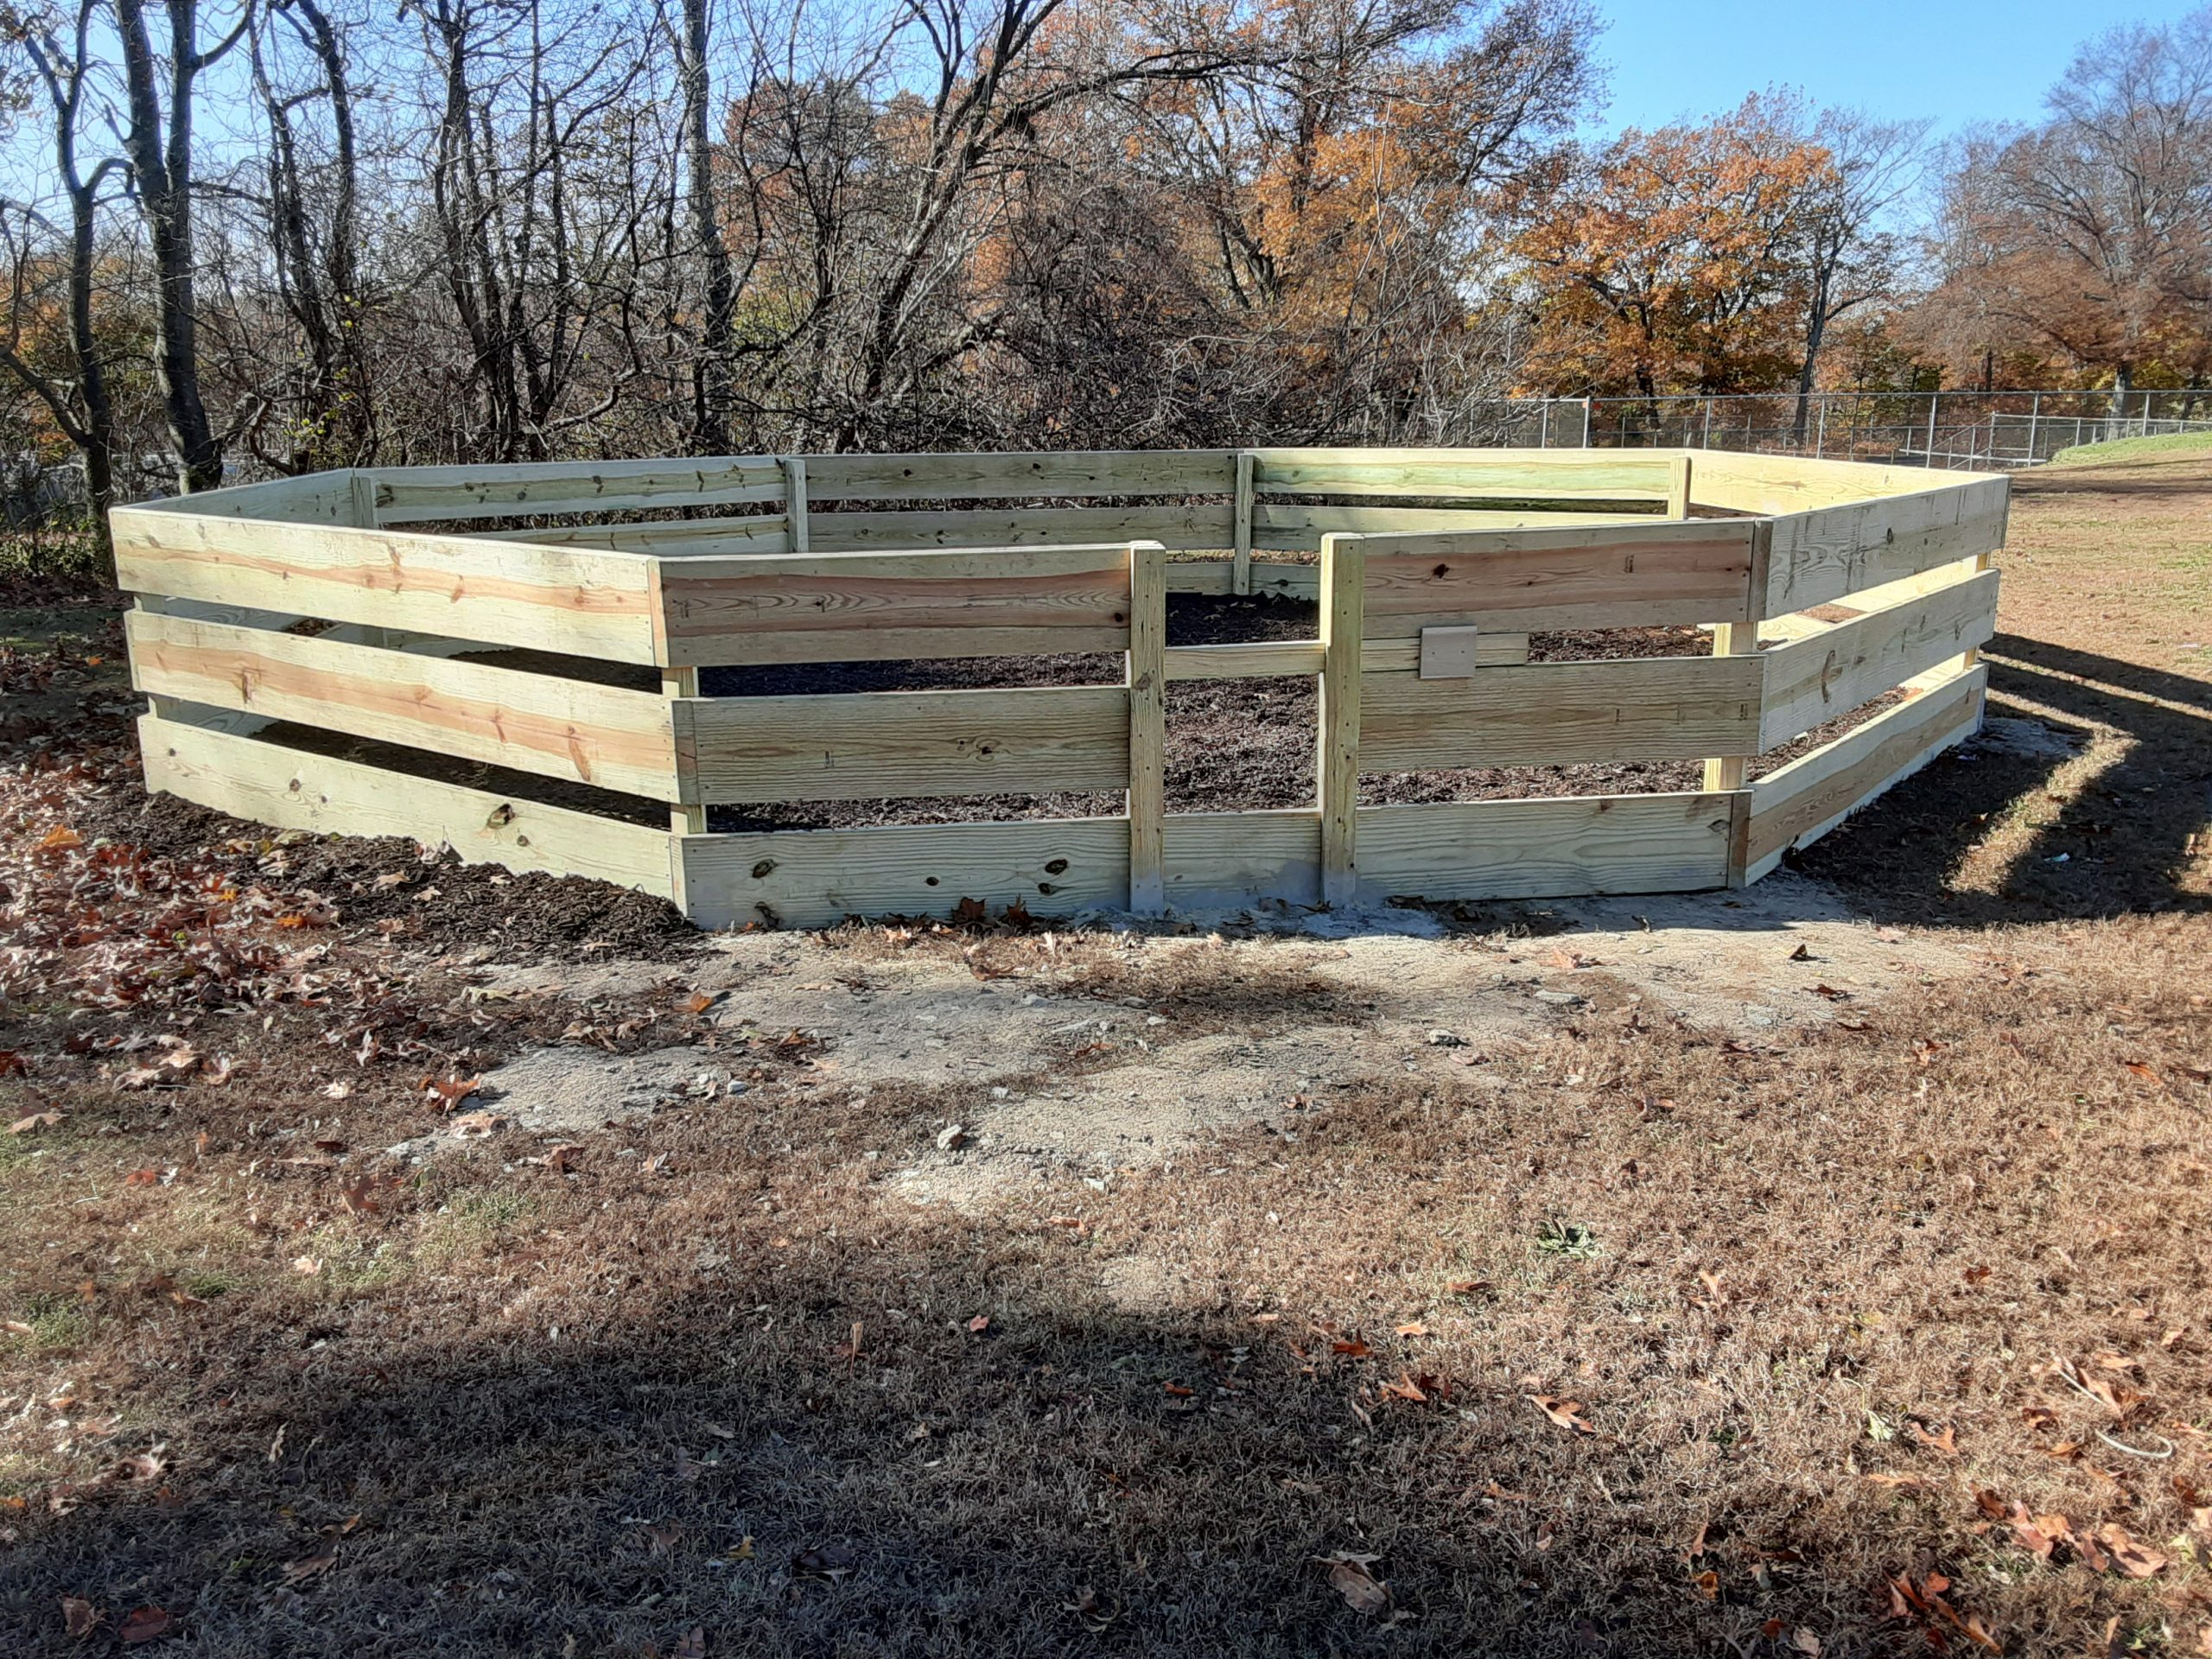 Lowe's employees build a 'gaga' pit